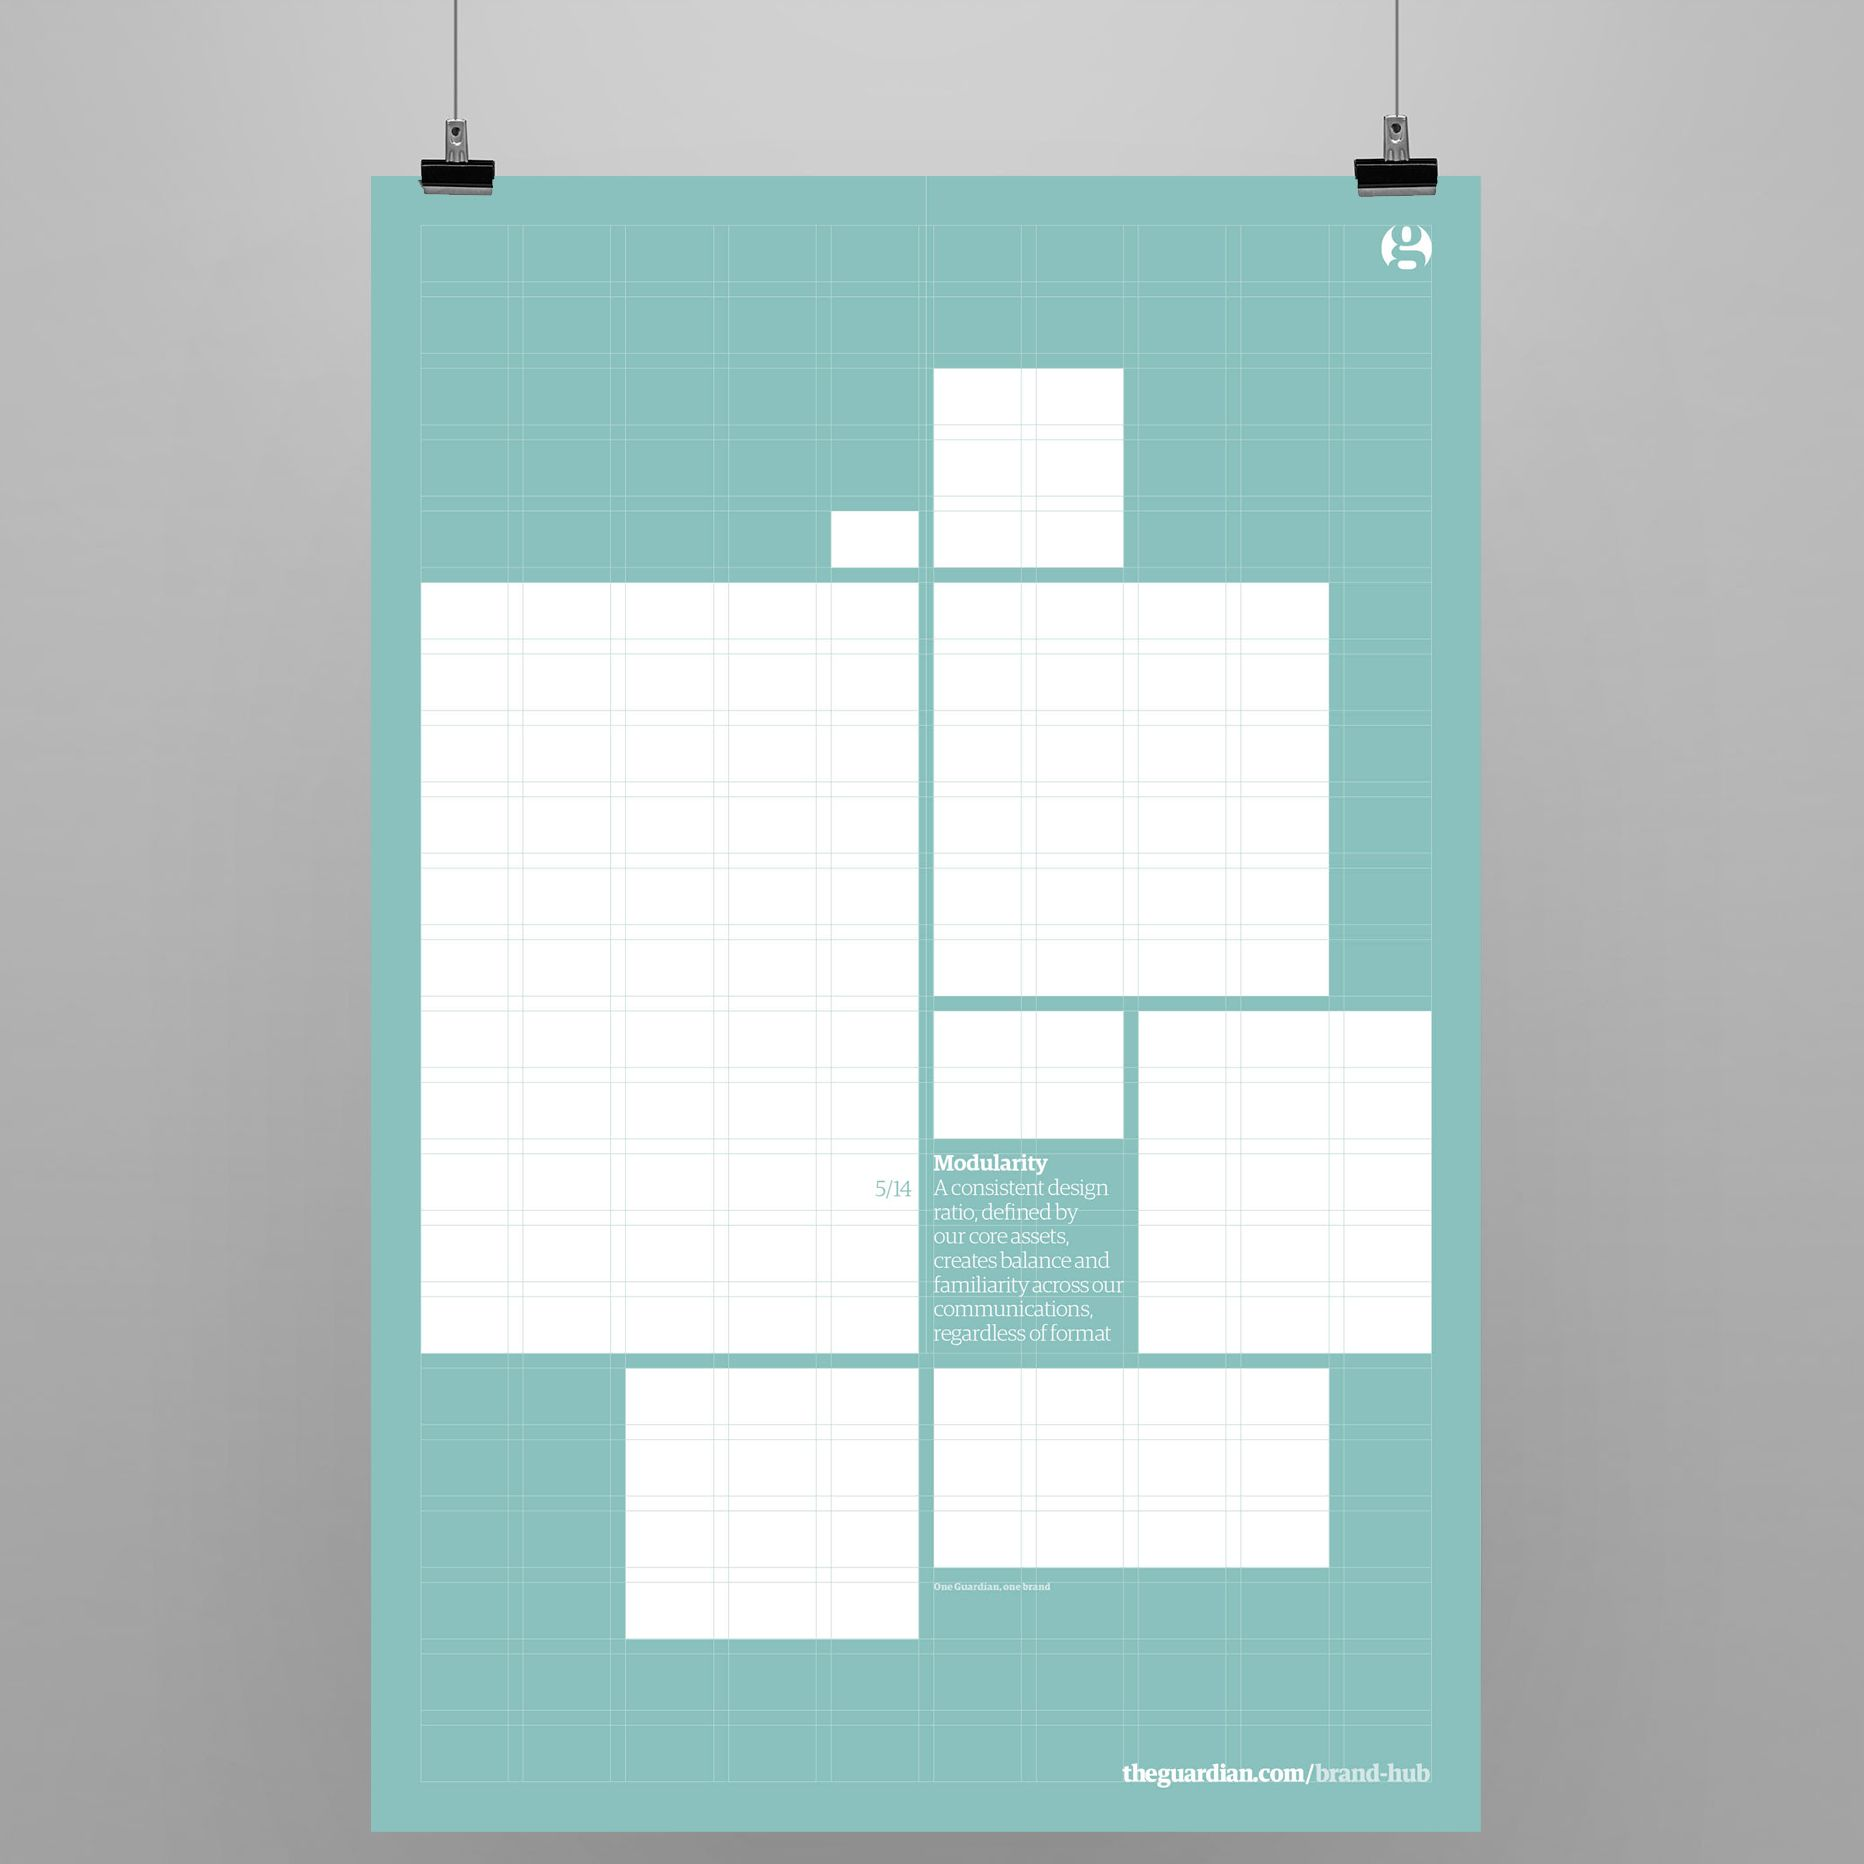 Poster design layout principles - I Designed Some Posters For The Guardian Internal Brand Launch Illustrating The Core Principles In